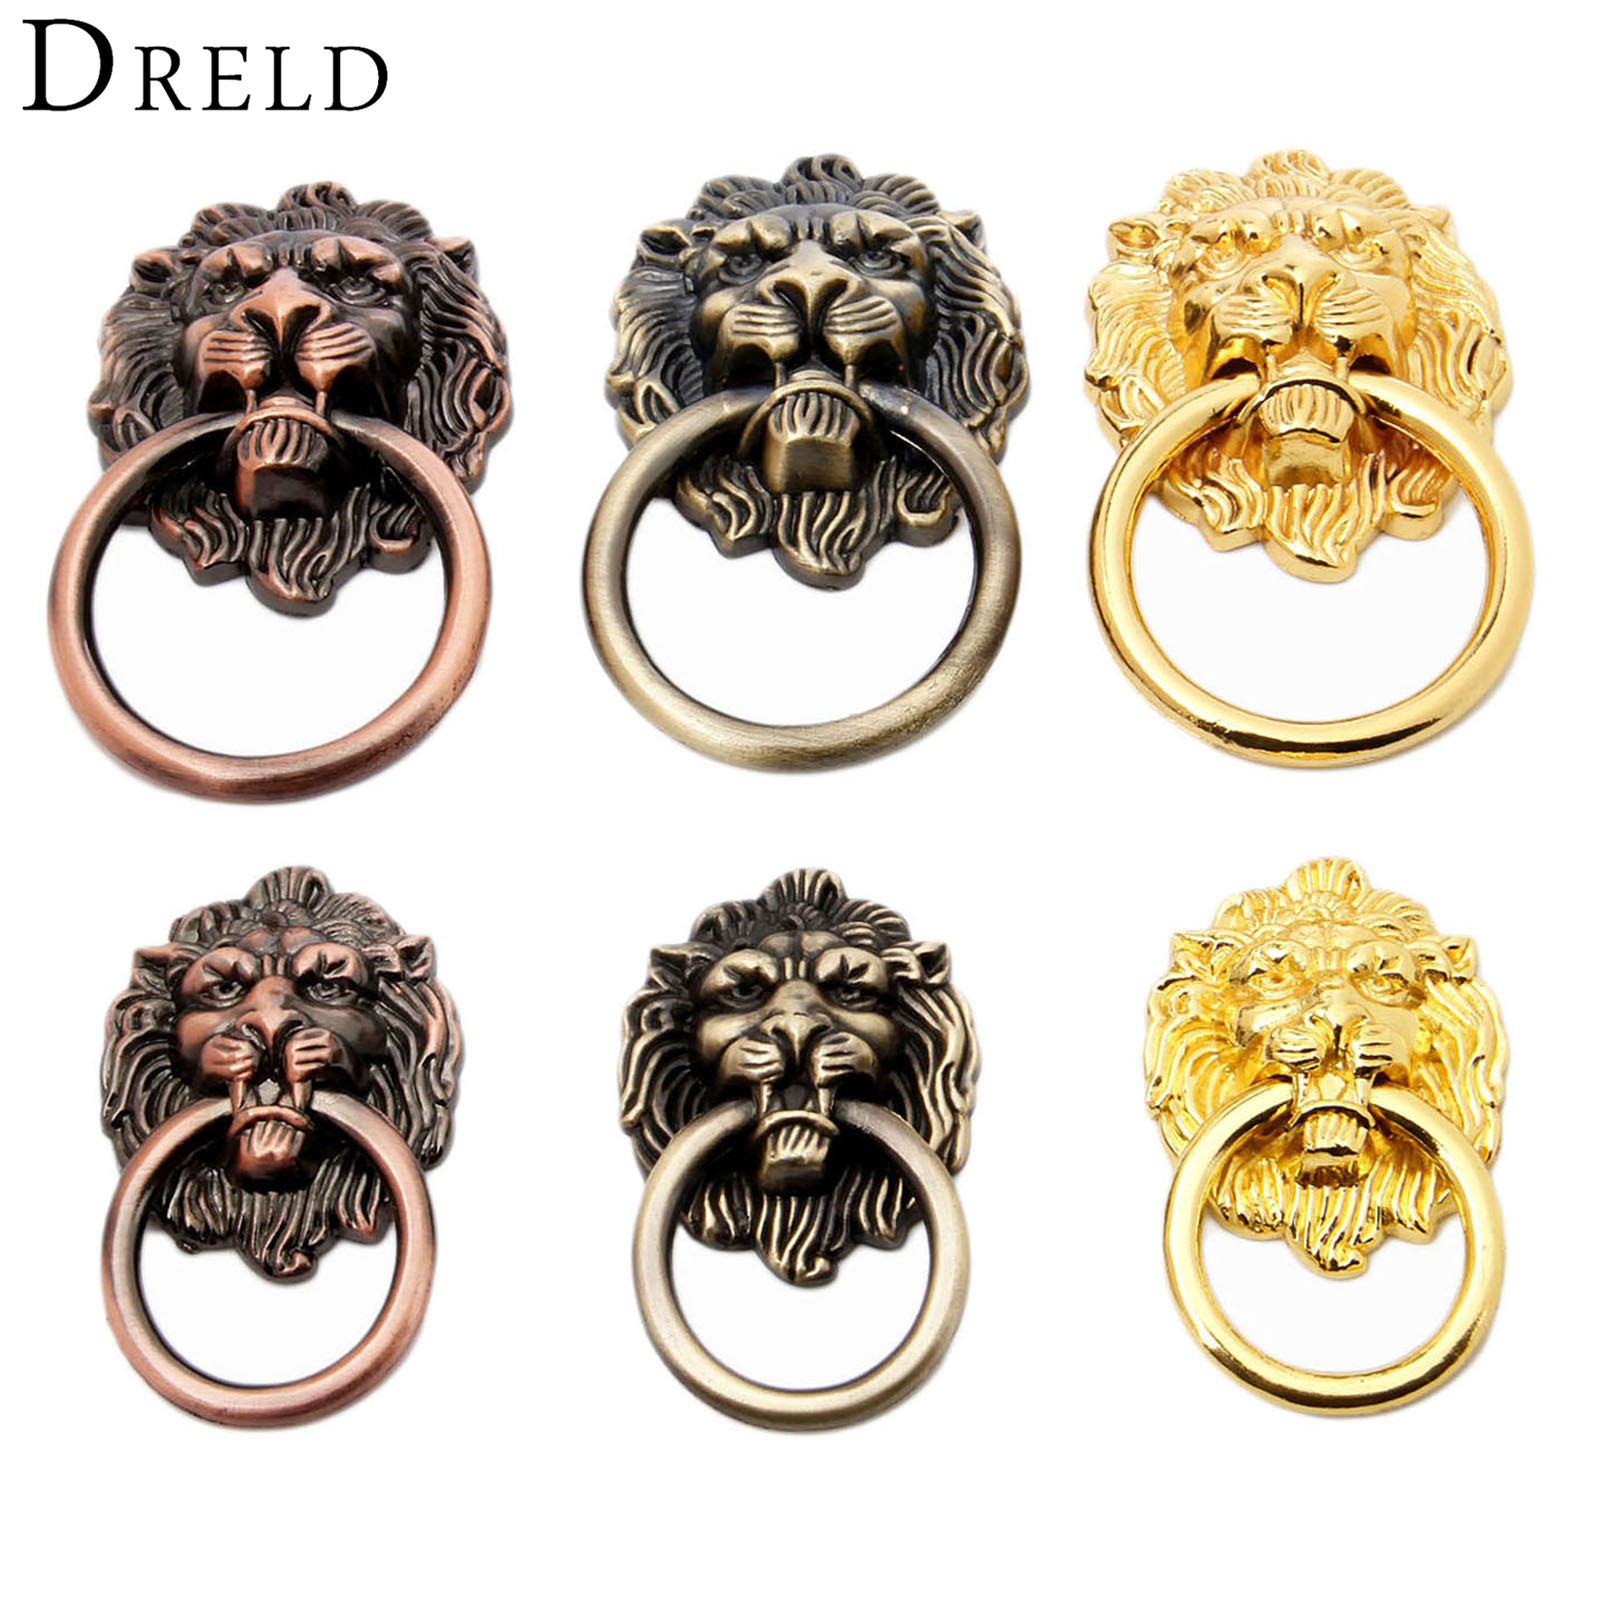 DRELD Antique Furniture Handles Vintage Lion Head Cabinet Knobs and Handles Furniture Door Cabinet Drawer Pull Handle Knob Ring 10 pcs vintage furniture handles cabinet knobs and handles cupboard door cabinet drawer knobs antique shell furniture handle